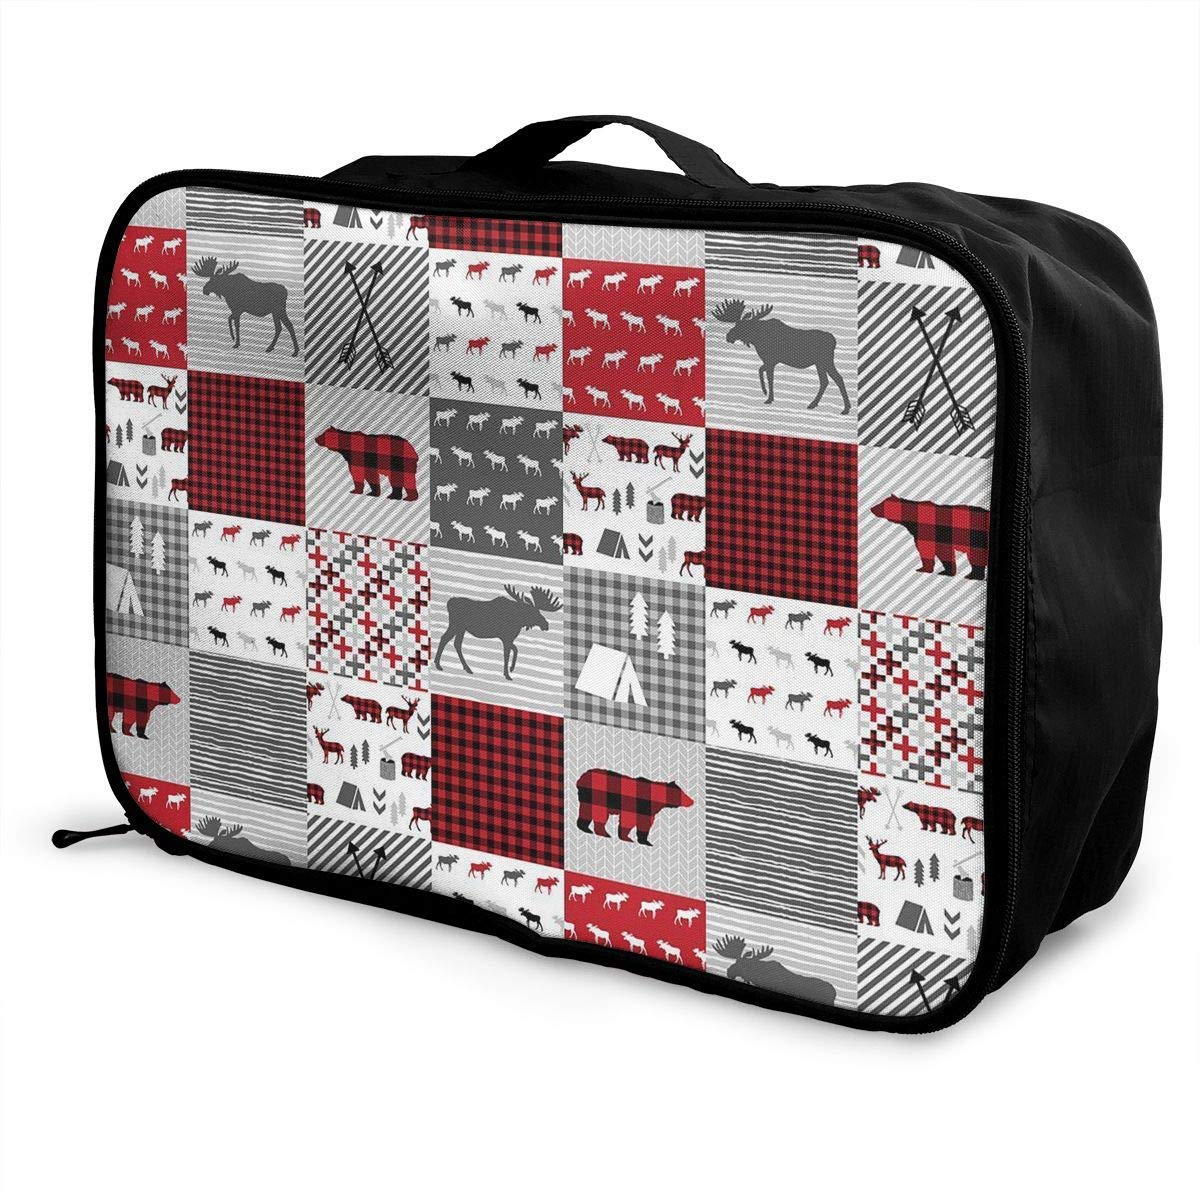 Portable Luggage Duffel Bag Buffalo Plaid Travel Bags Carry-on In Trolley Handle